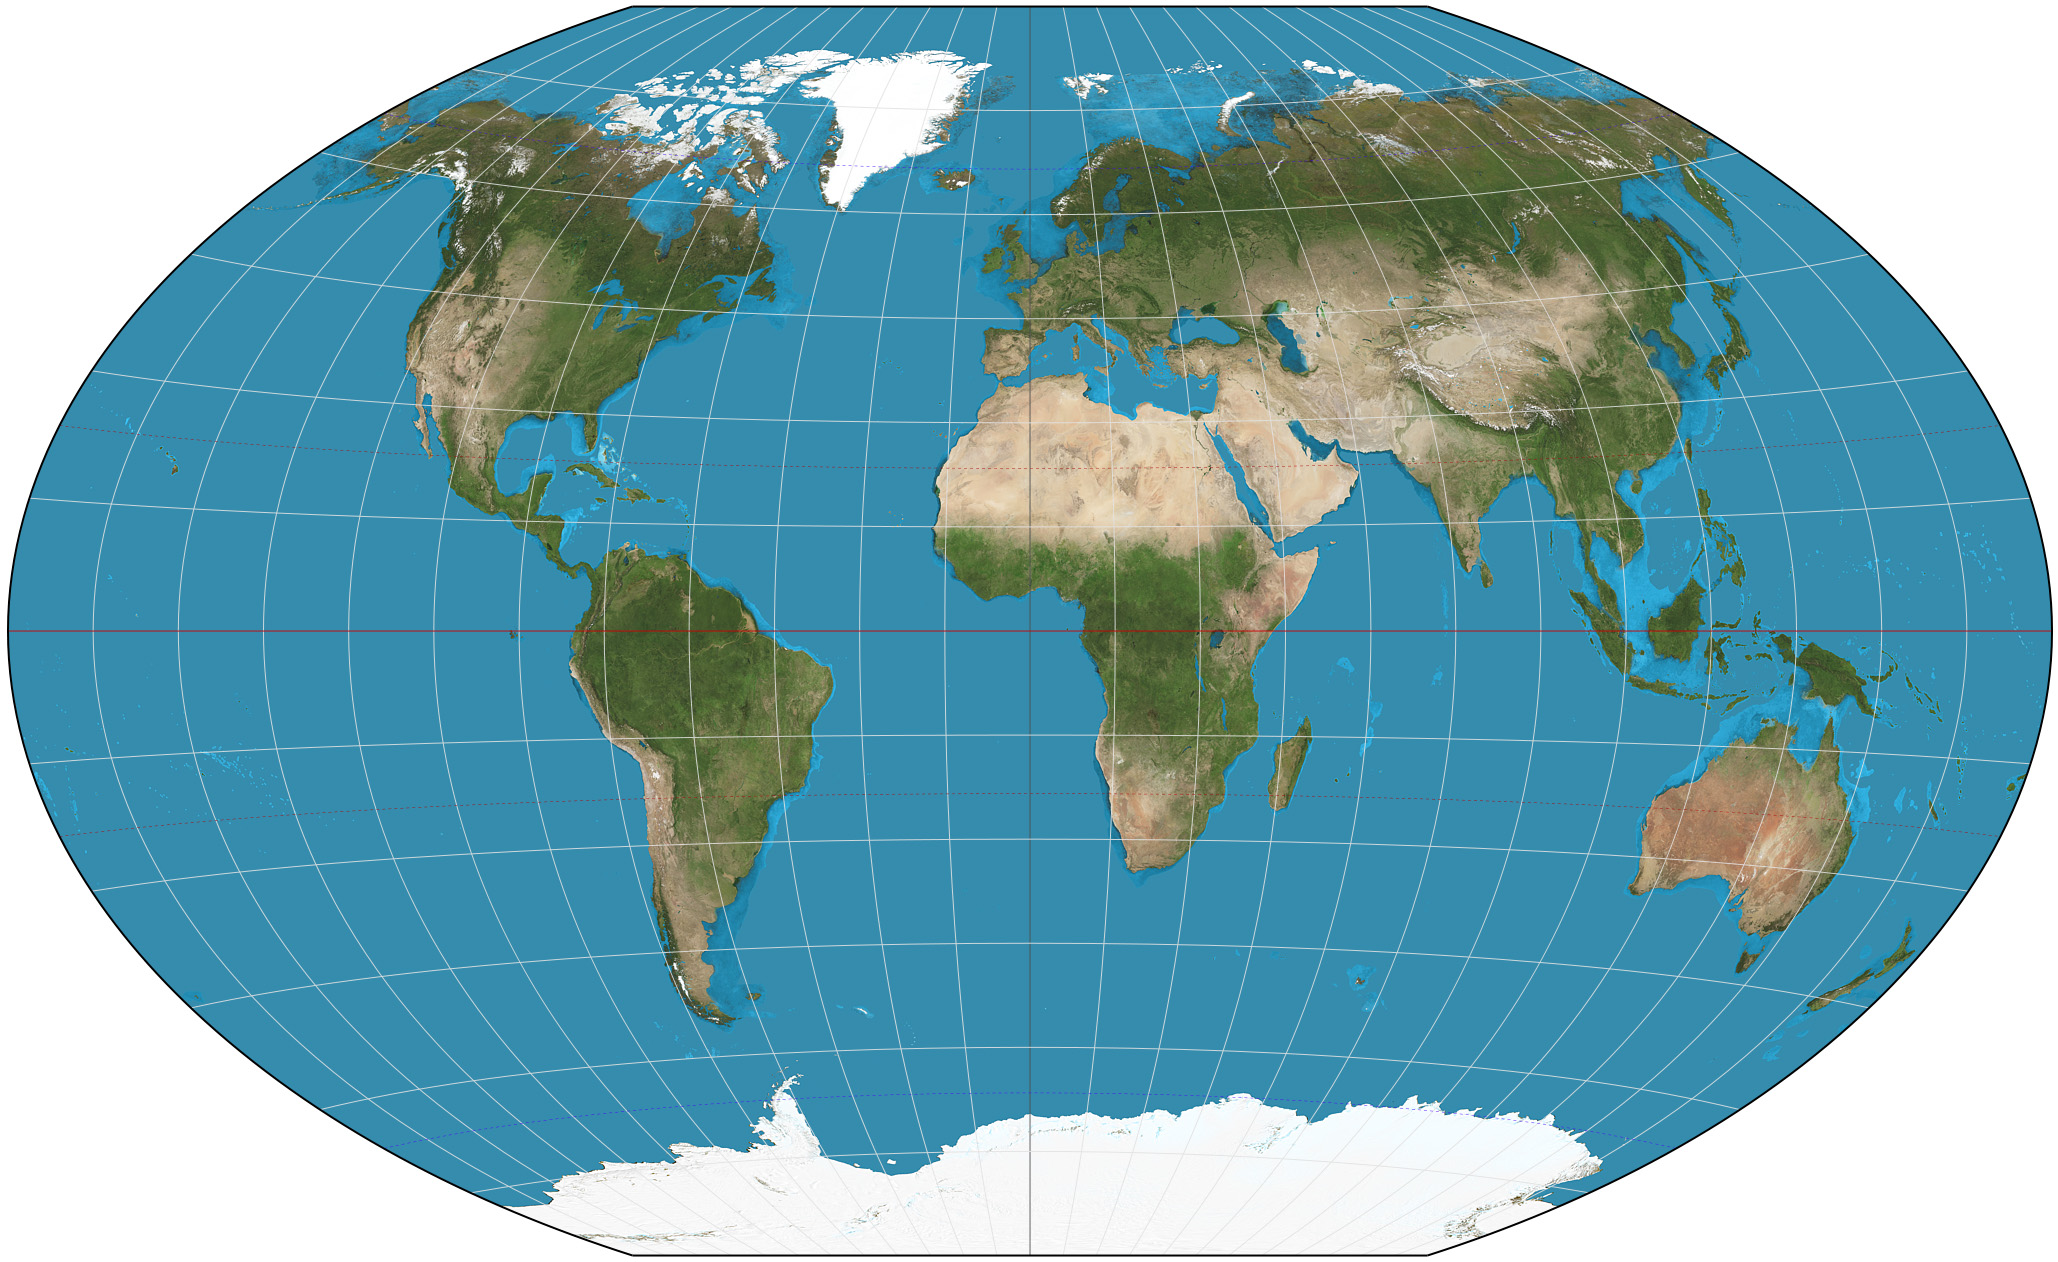 World Map Wikipedia - World map images